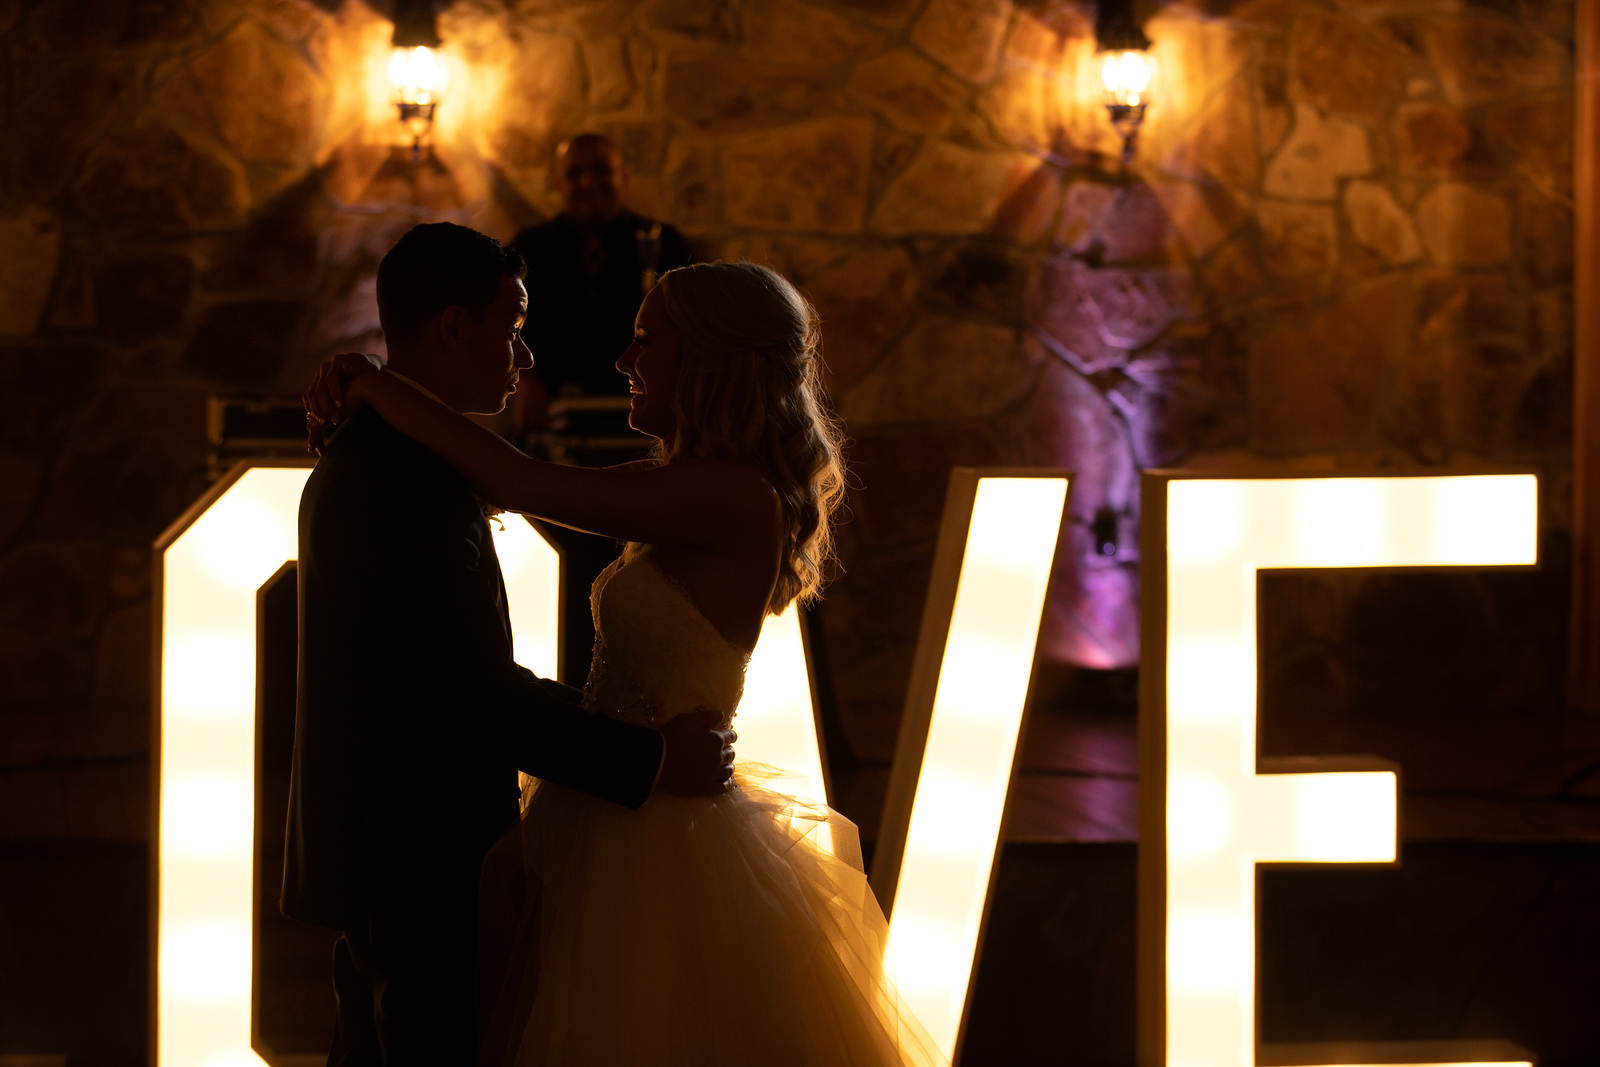 a bride and groom dancing on their wedding night in front of lit signage that says LOVE